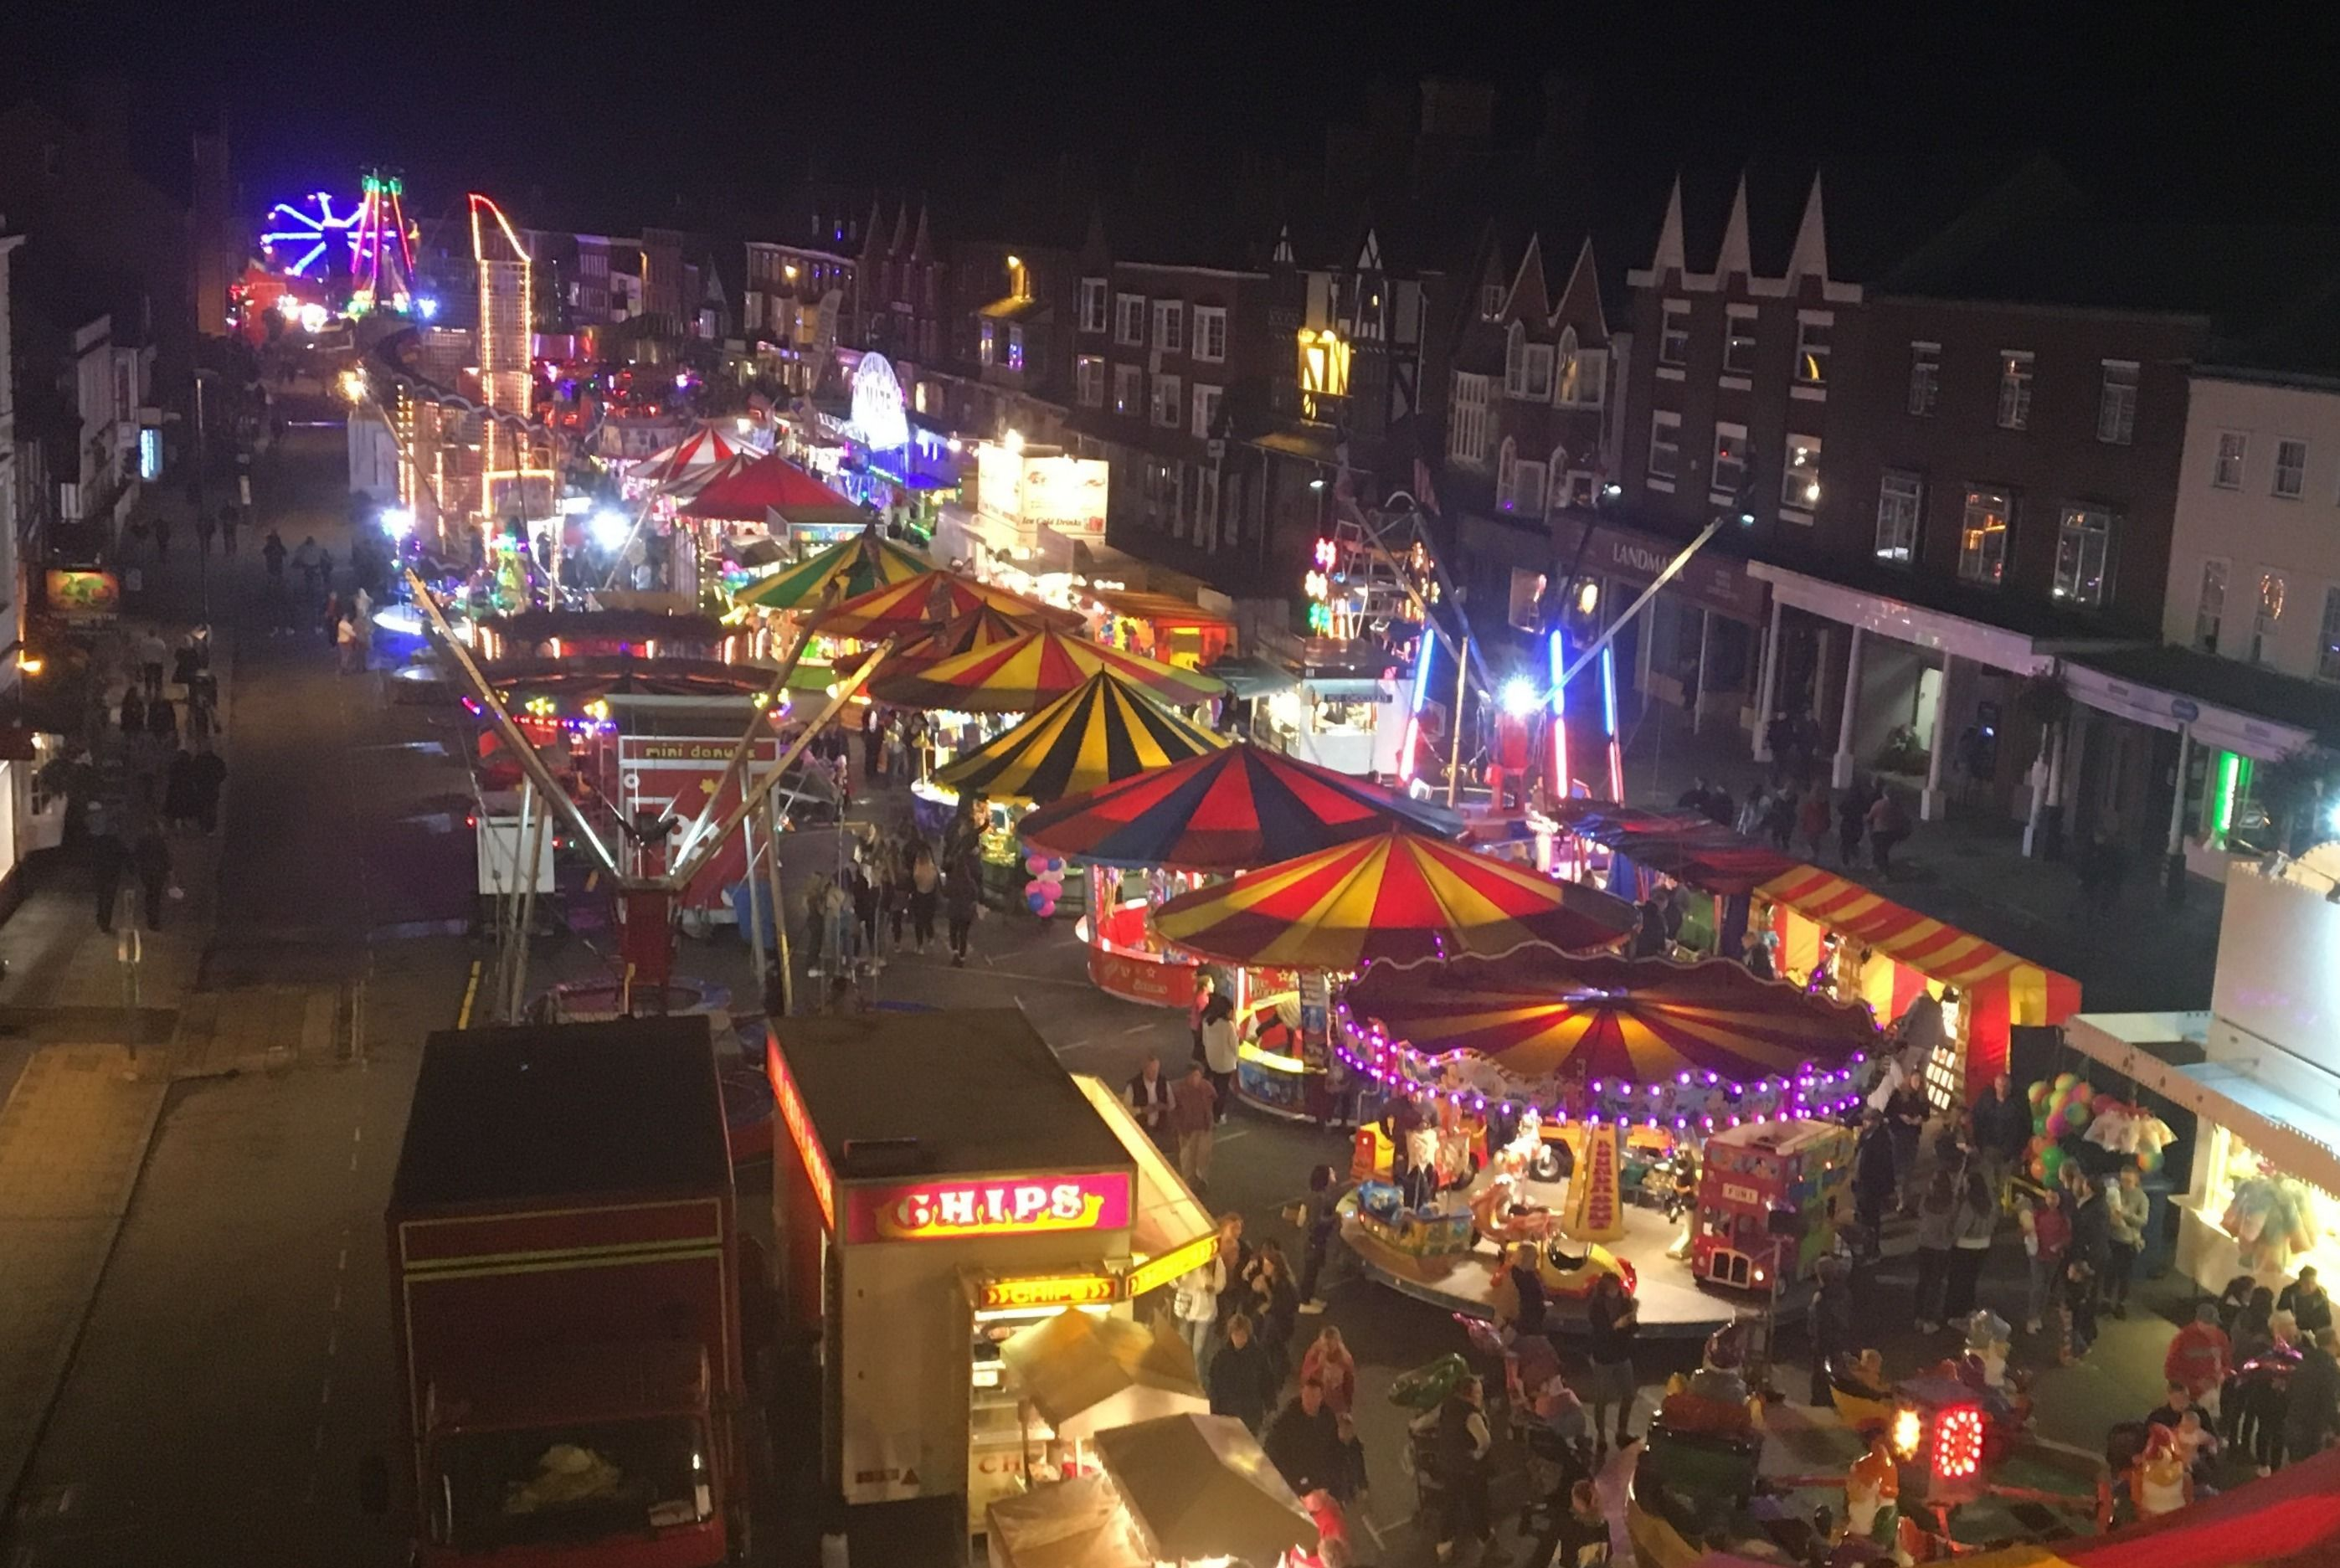 16 October 2021 - Mop Fair